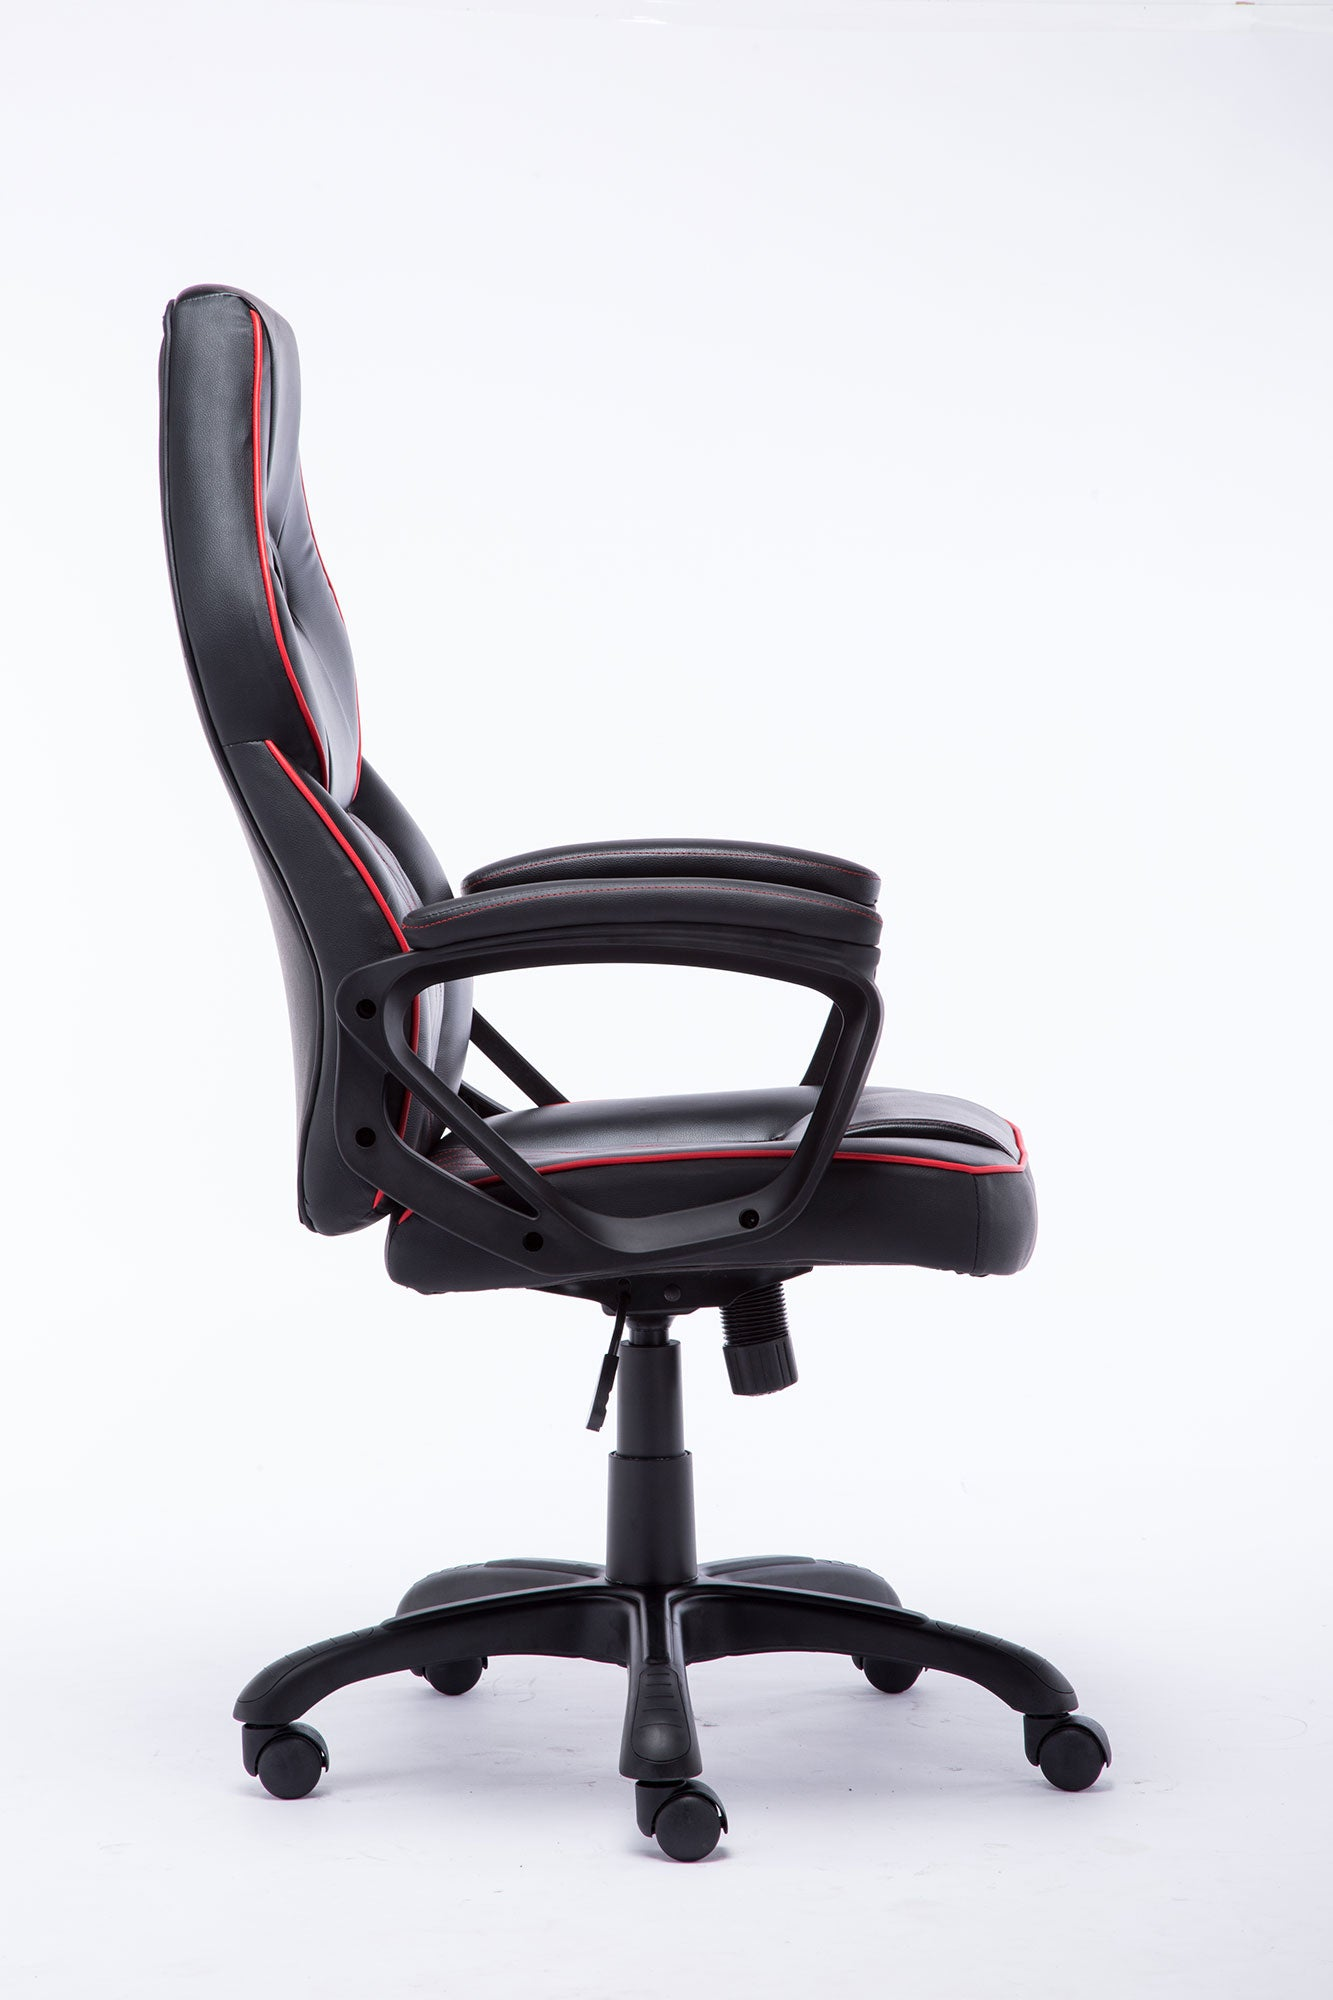 S4 Gaming Chair - Black/Red